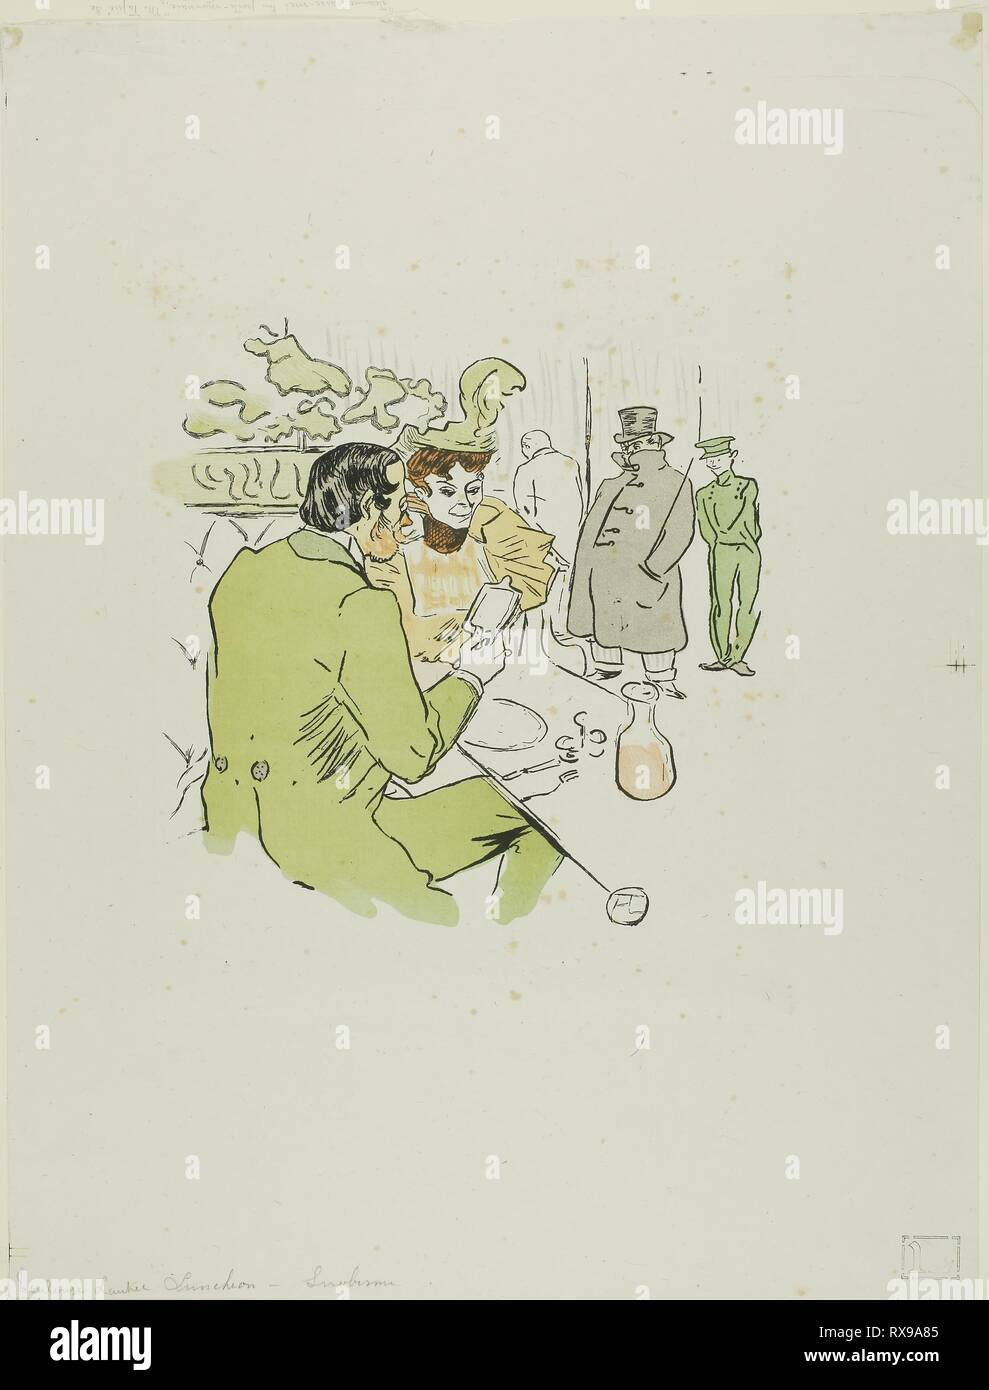 Snobbery. after Henri de Toulouse-Lautrec; French, 1864-1901. Date: 1897. Dimensions: 201 × 201 mm (image); 420 × 321 mm (sheet). Color lithographic reproduction of a photorelief print on grayish wove chine. Origin: France. Museum: The Chicago Art Institute. - Stock Image